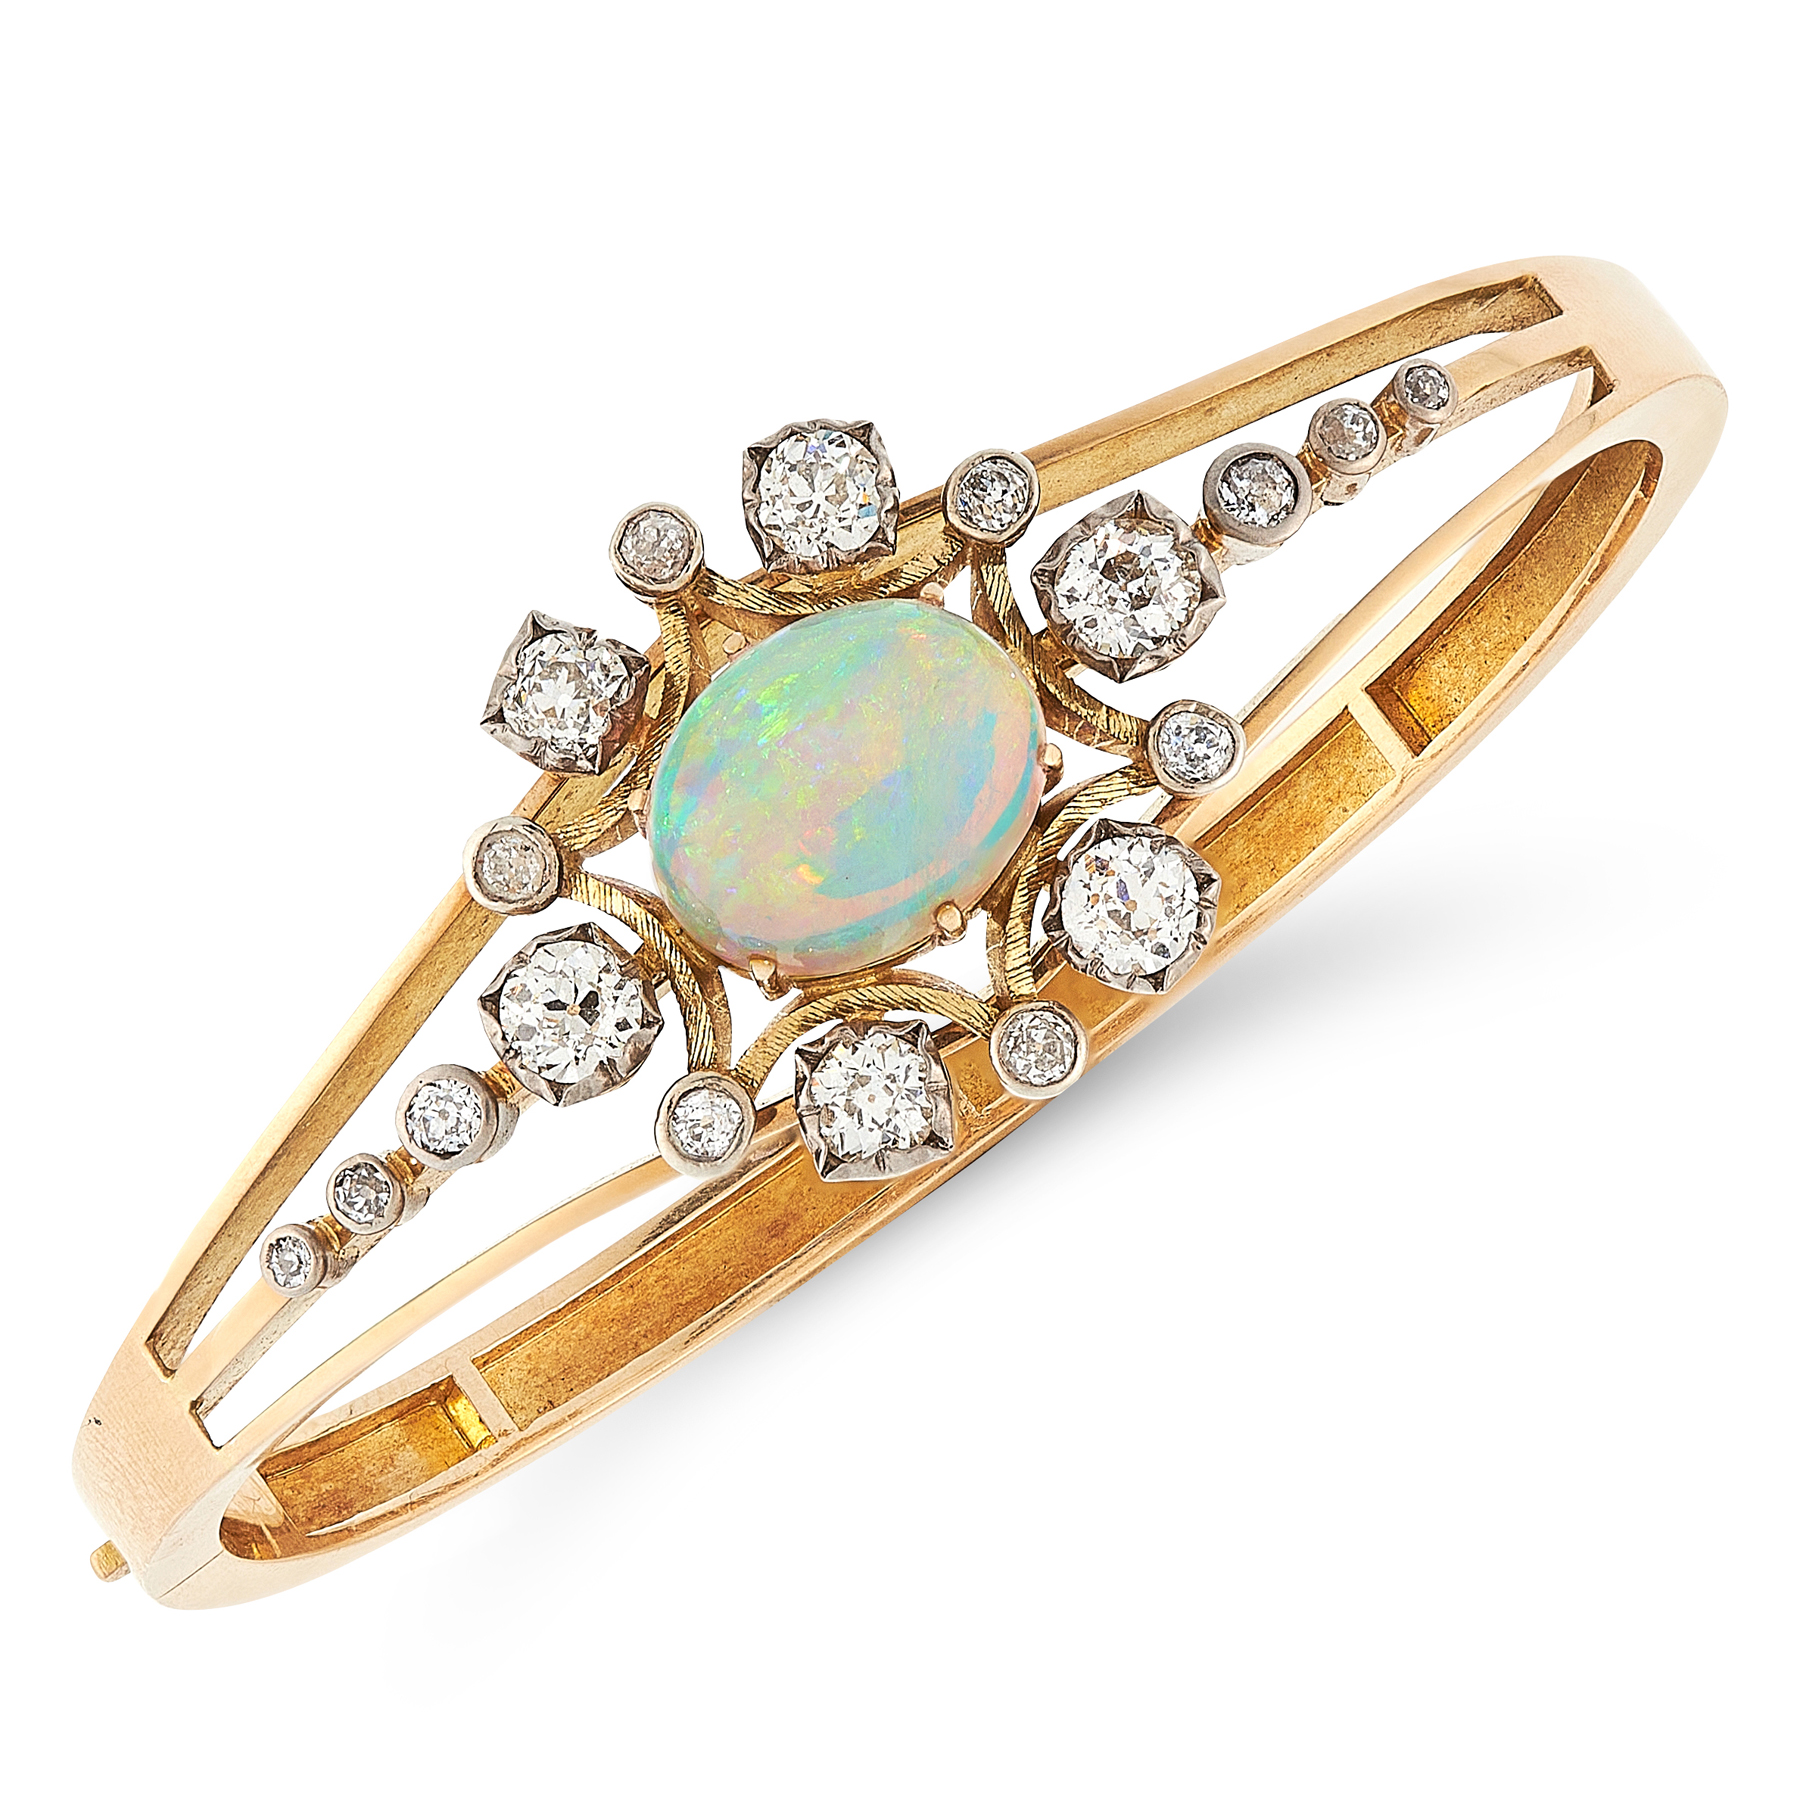 AN ANTIQUE OPAL AND DIAMOND BANGLE in high carat yellow gold, set with a cabochon opal in a border